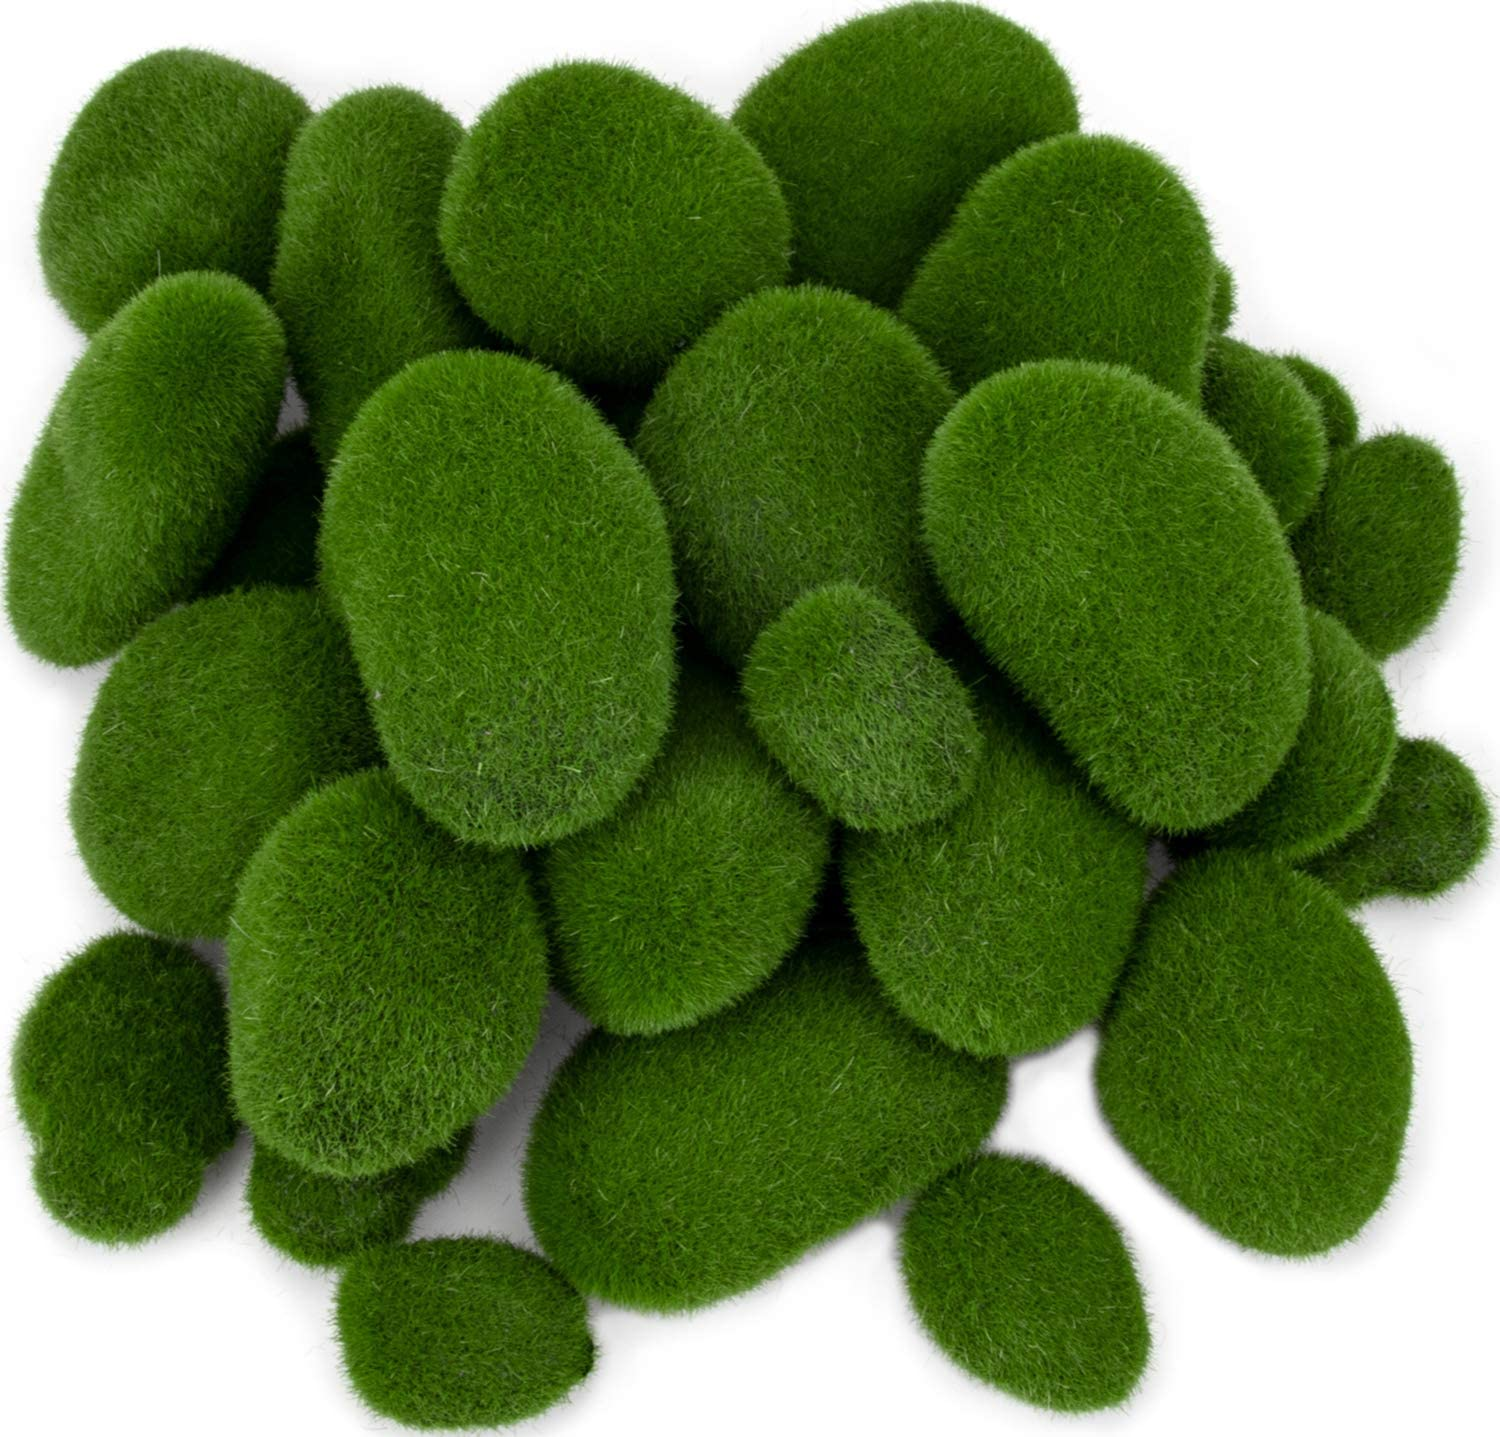 Nicunom 40 Pcs Artificial Moss Rocks Decorative Faux Green Moss Covered Stones Fake Moss Balls for Garden Decor DIY Floral Arrangements Plant Poted Decoration, 5 Size